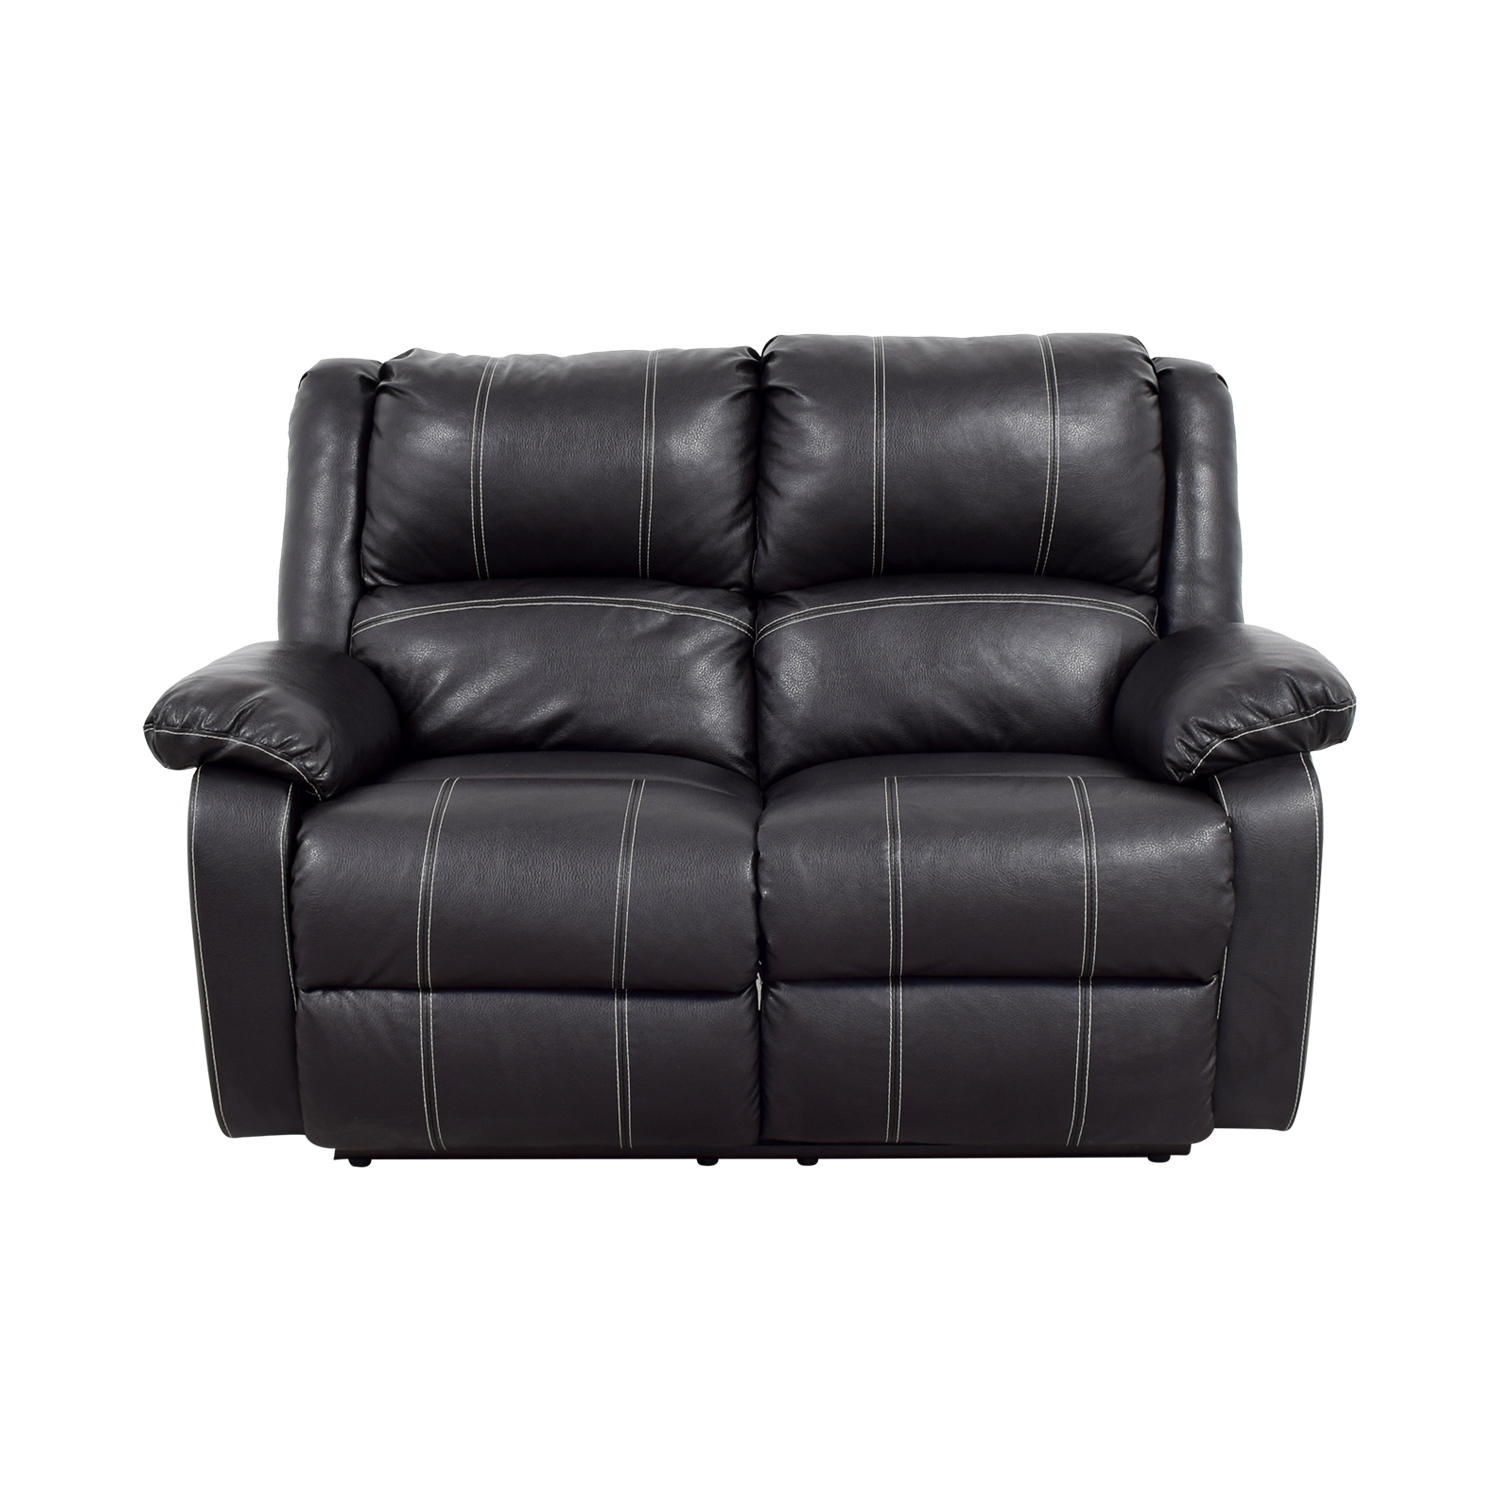 Buy Reclining Love Seat Used Furniture On Sale